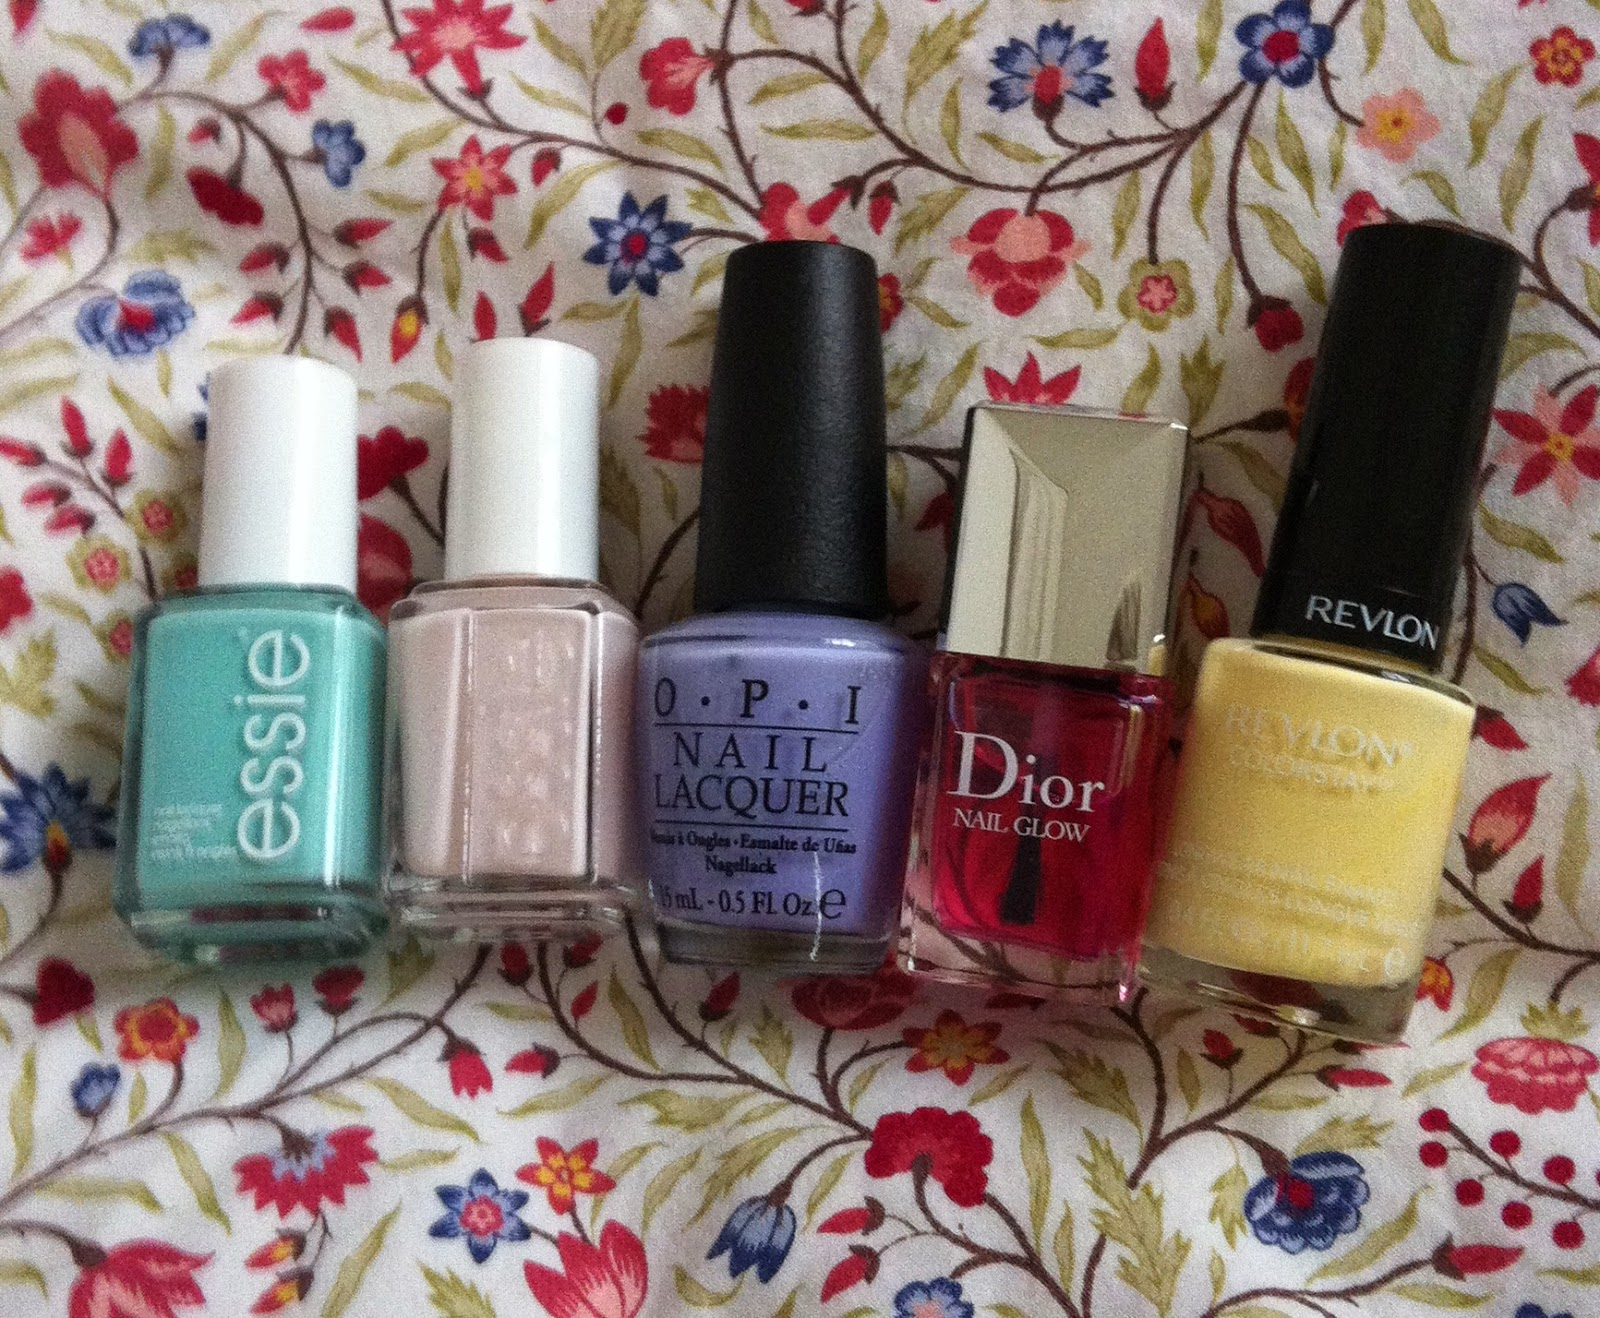 Let Spring Begin: Top 5 Nail Polishes for the Season